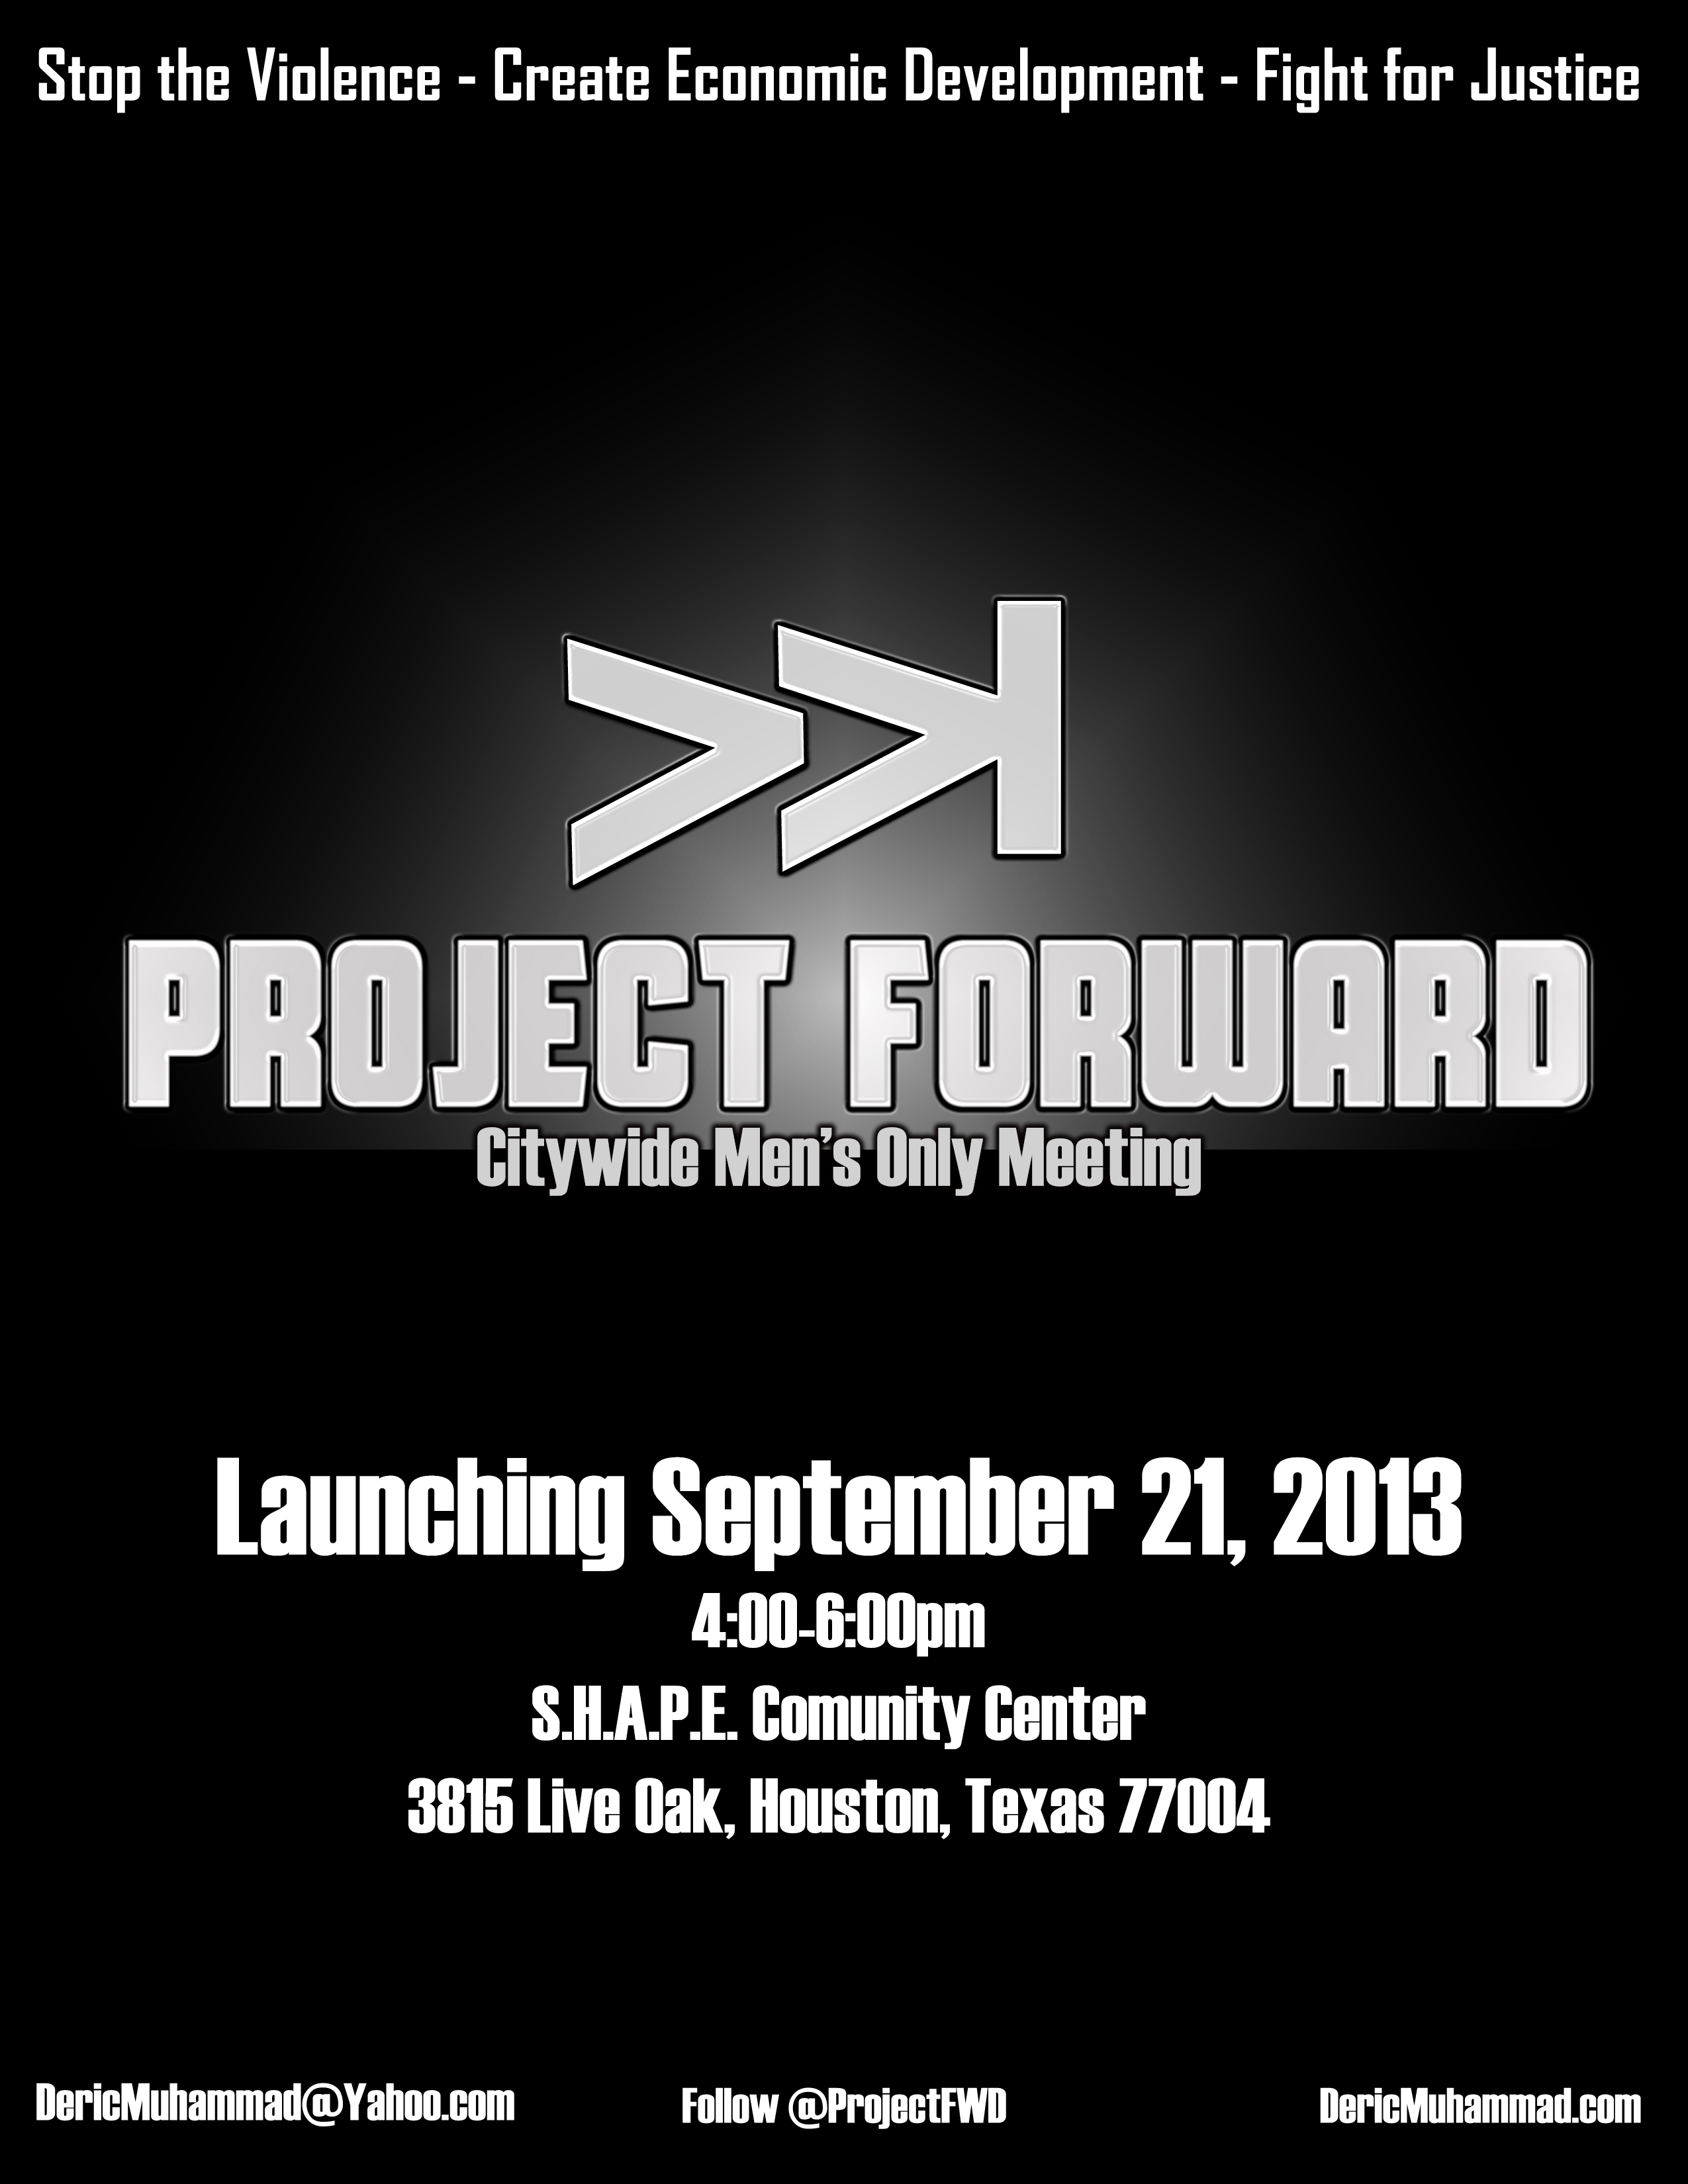 Project Forward: Men's Only Meeting #StopTheViolence